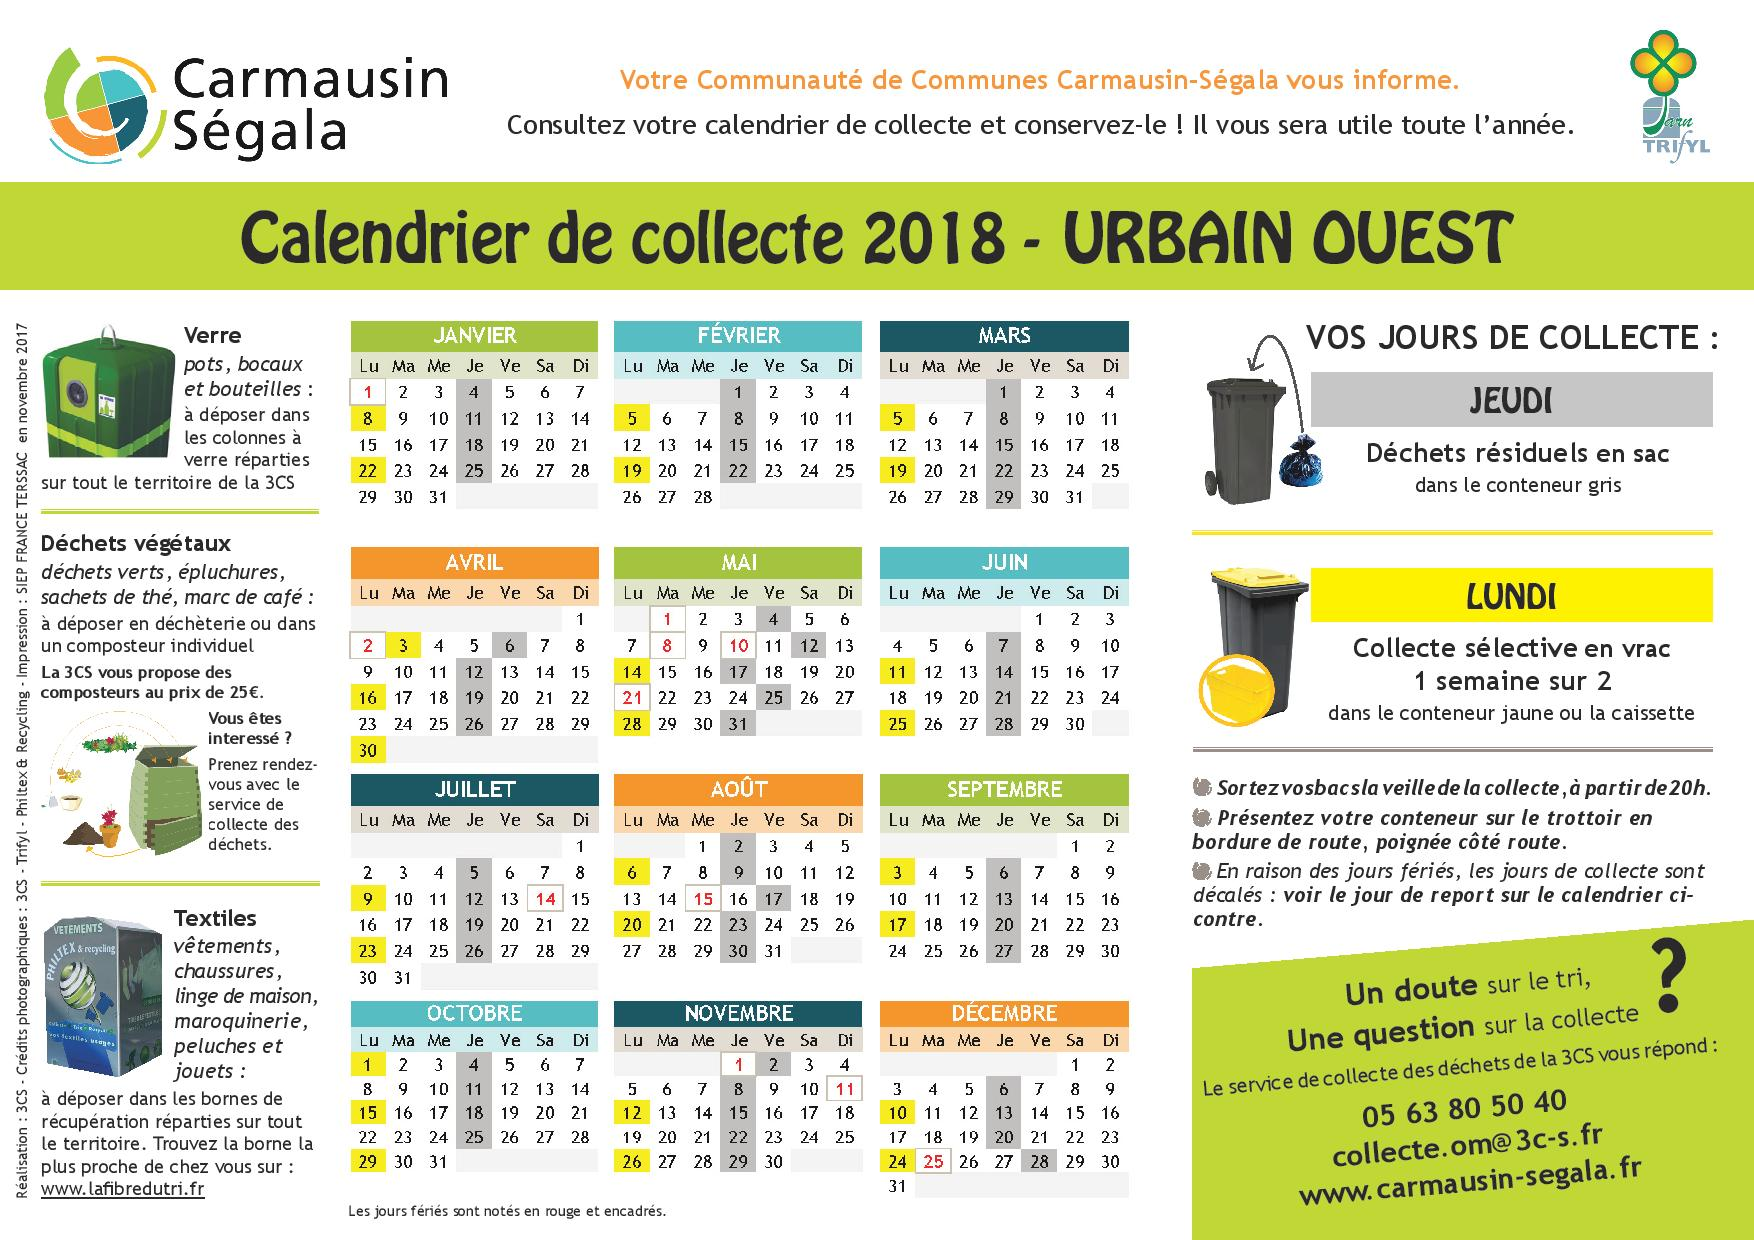 calendriers_om_2018_urbain_ouest-page-001.jpg